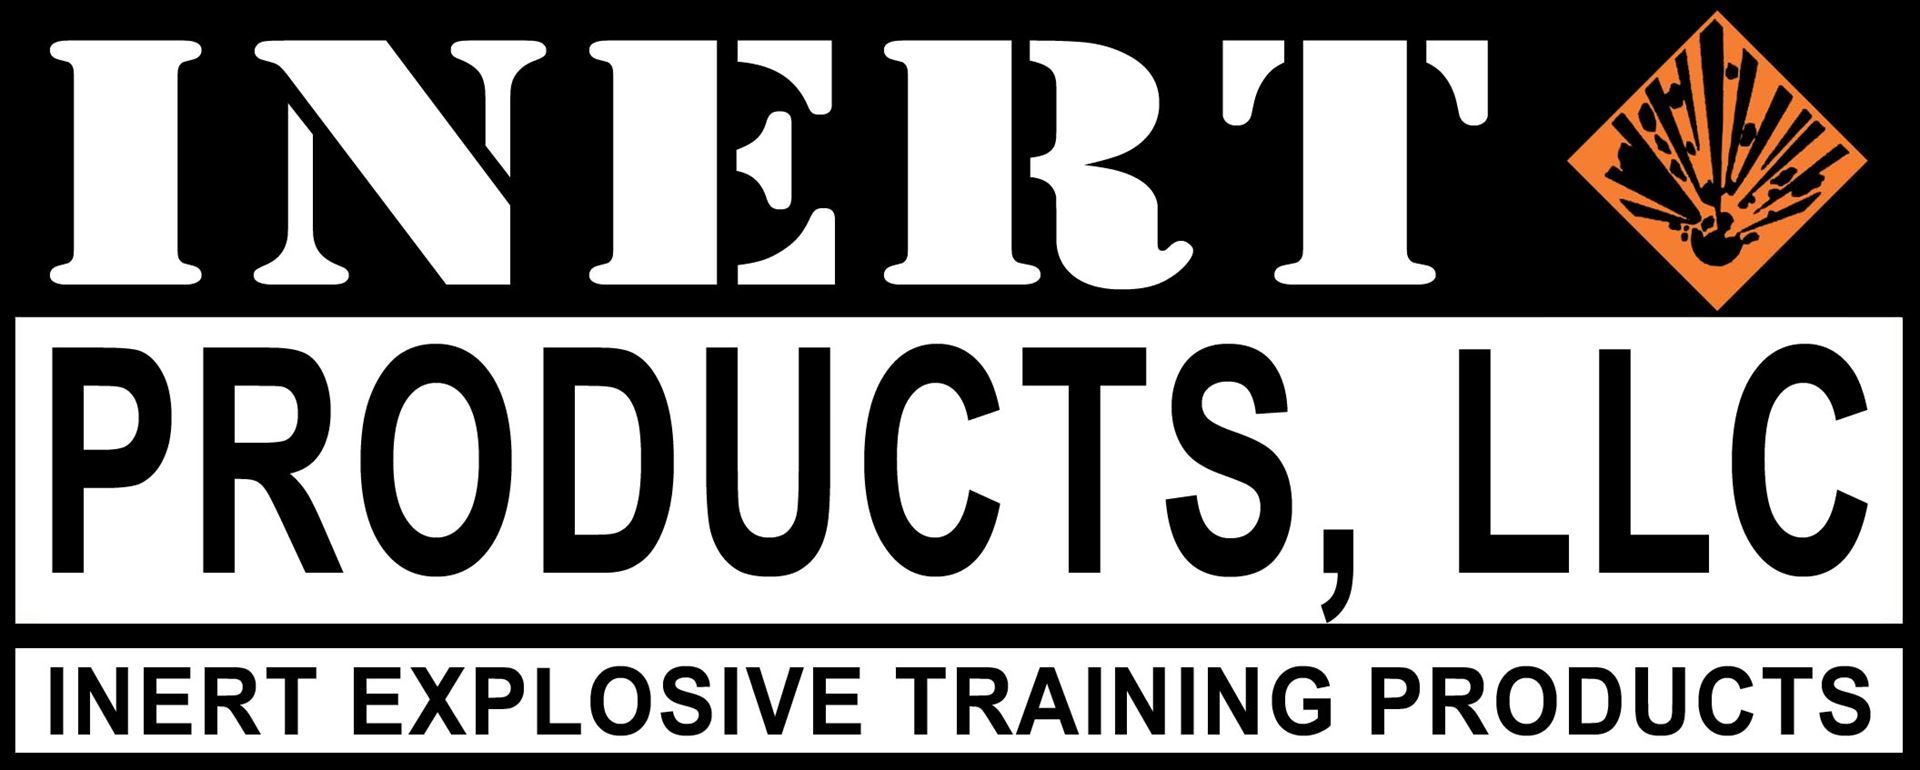 Master Inert Products Logo 05042017